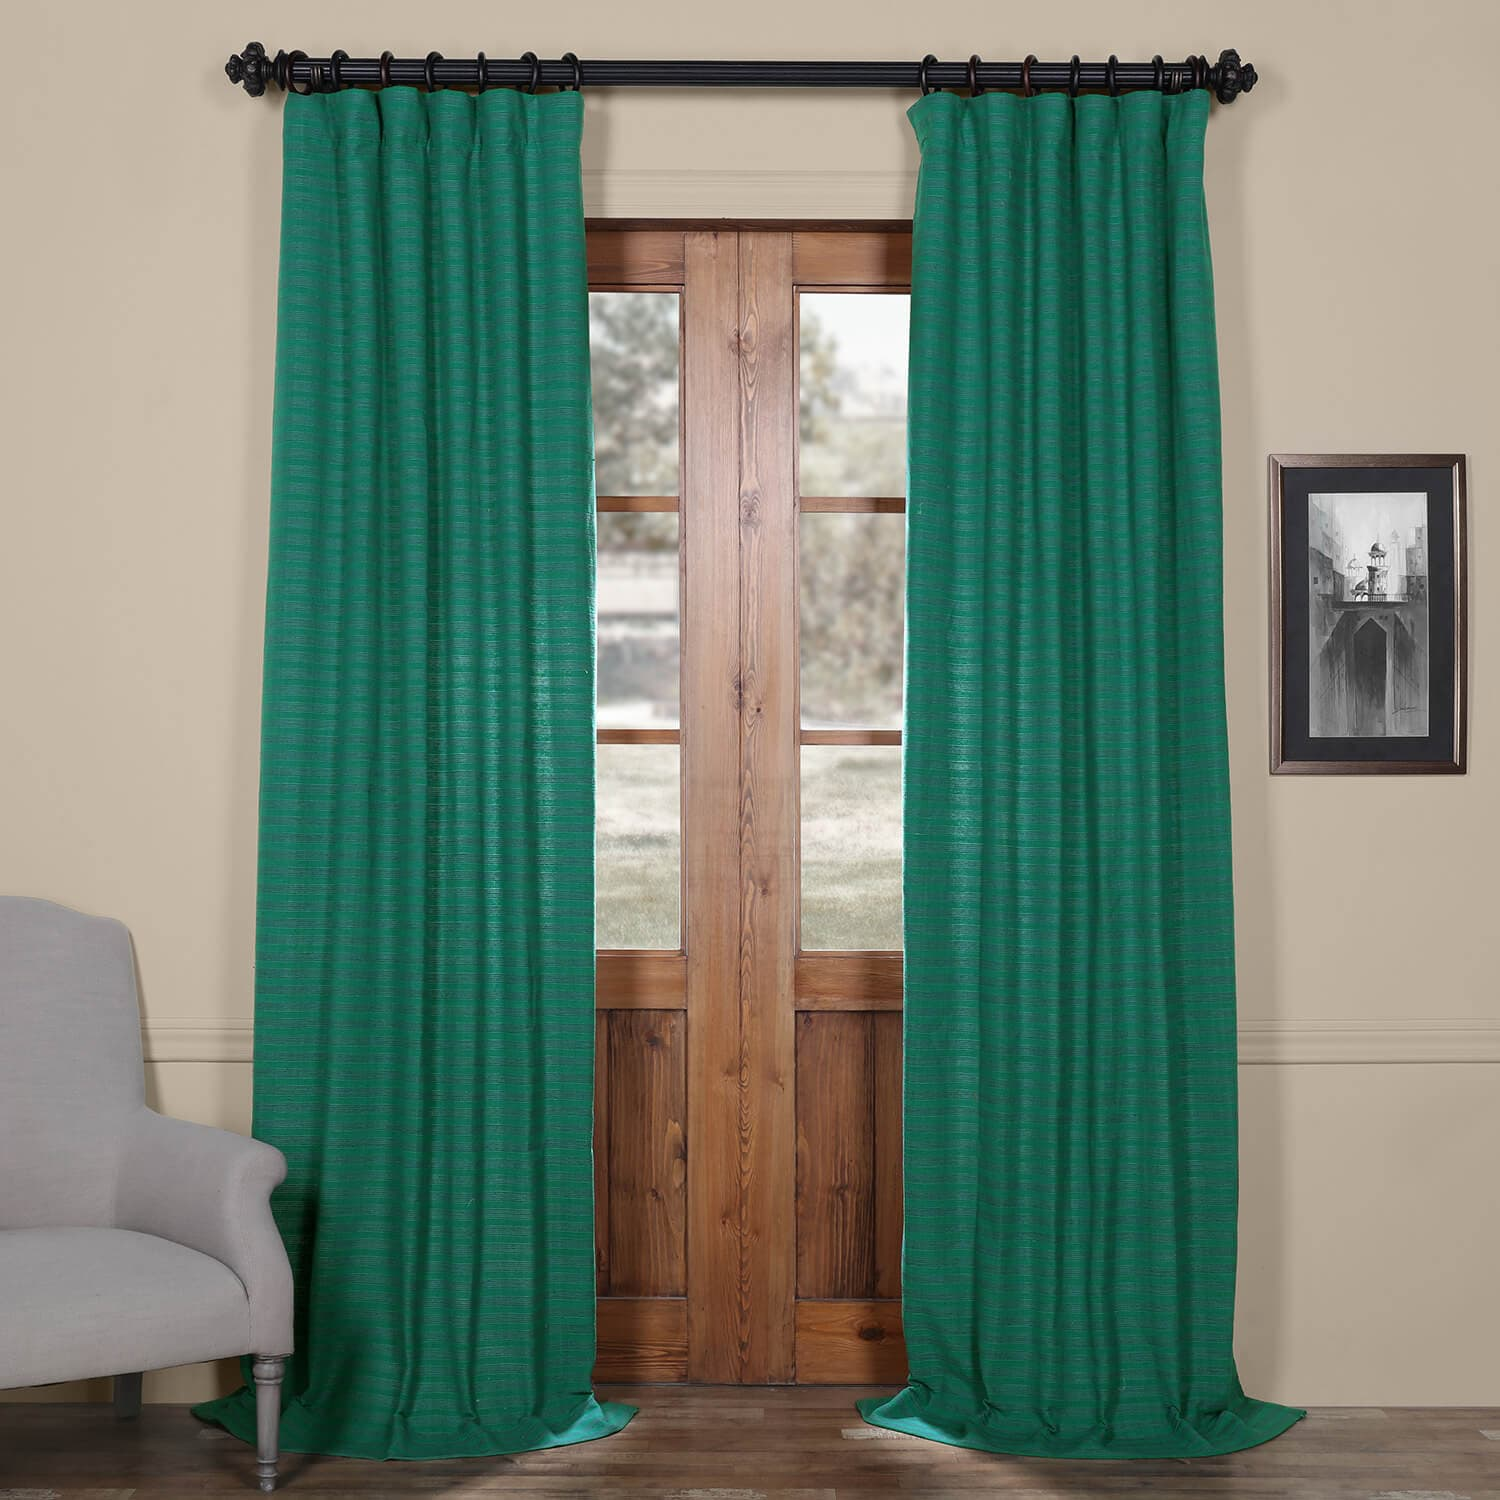 Curtain Deals Teal Hand Weaved Cotton Curtain Deals Learn More